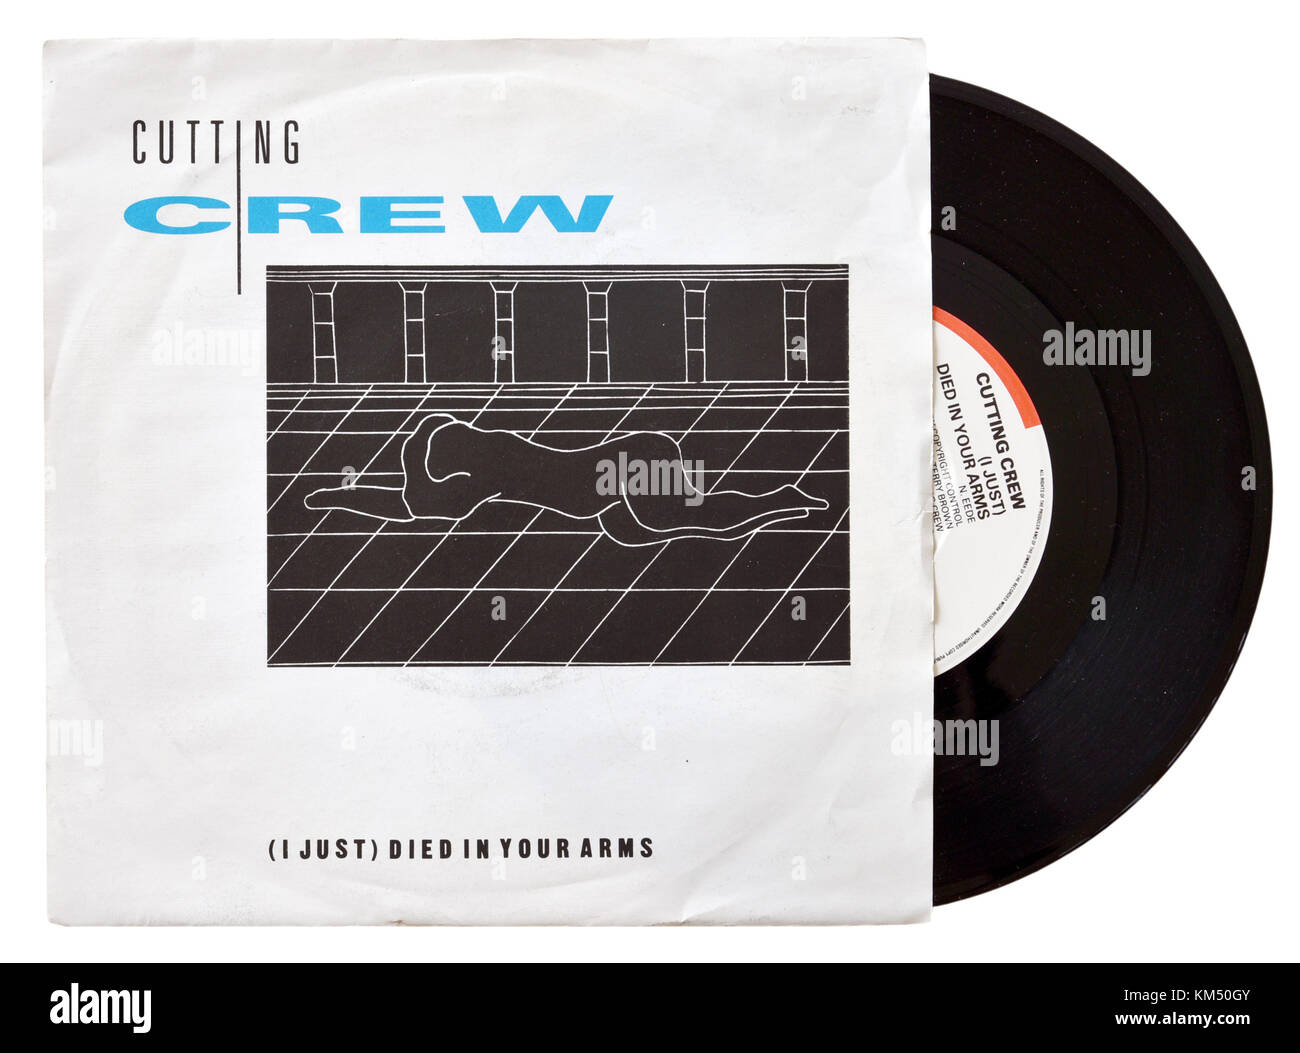 Cutting Crew I Just Died In Your Arms seven inch single - Stock Image